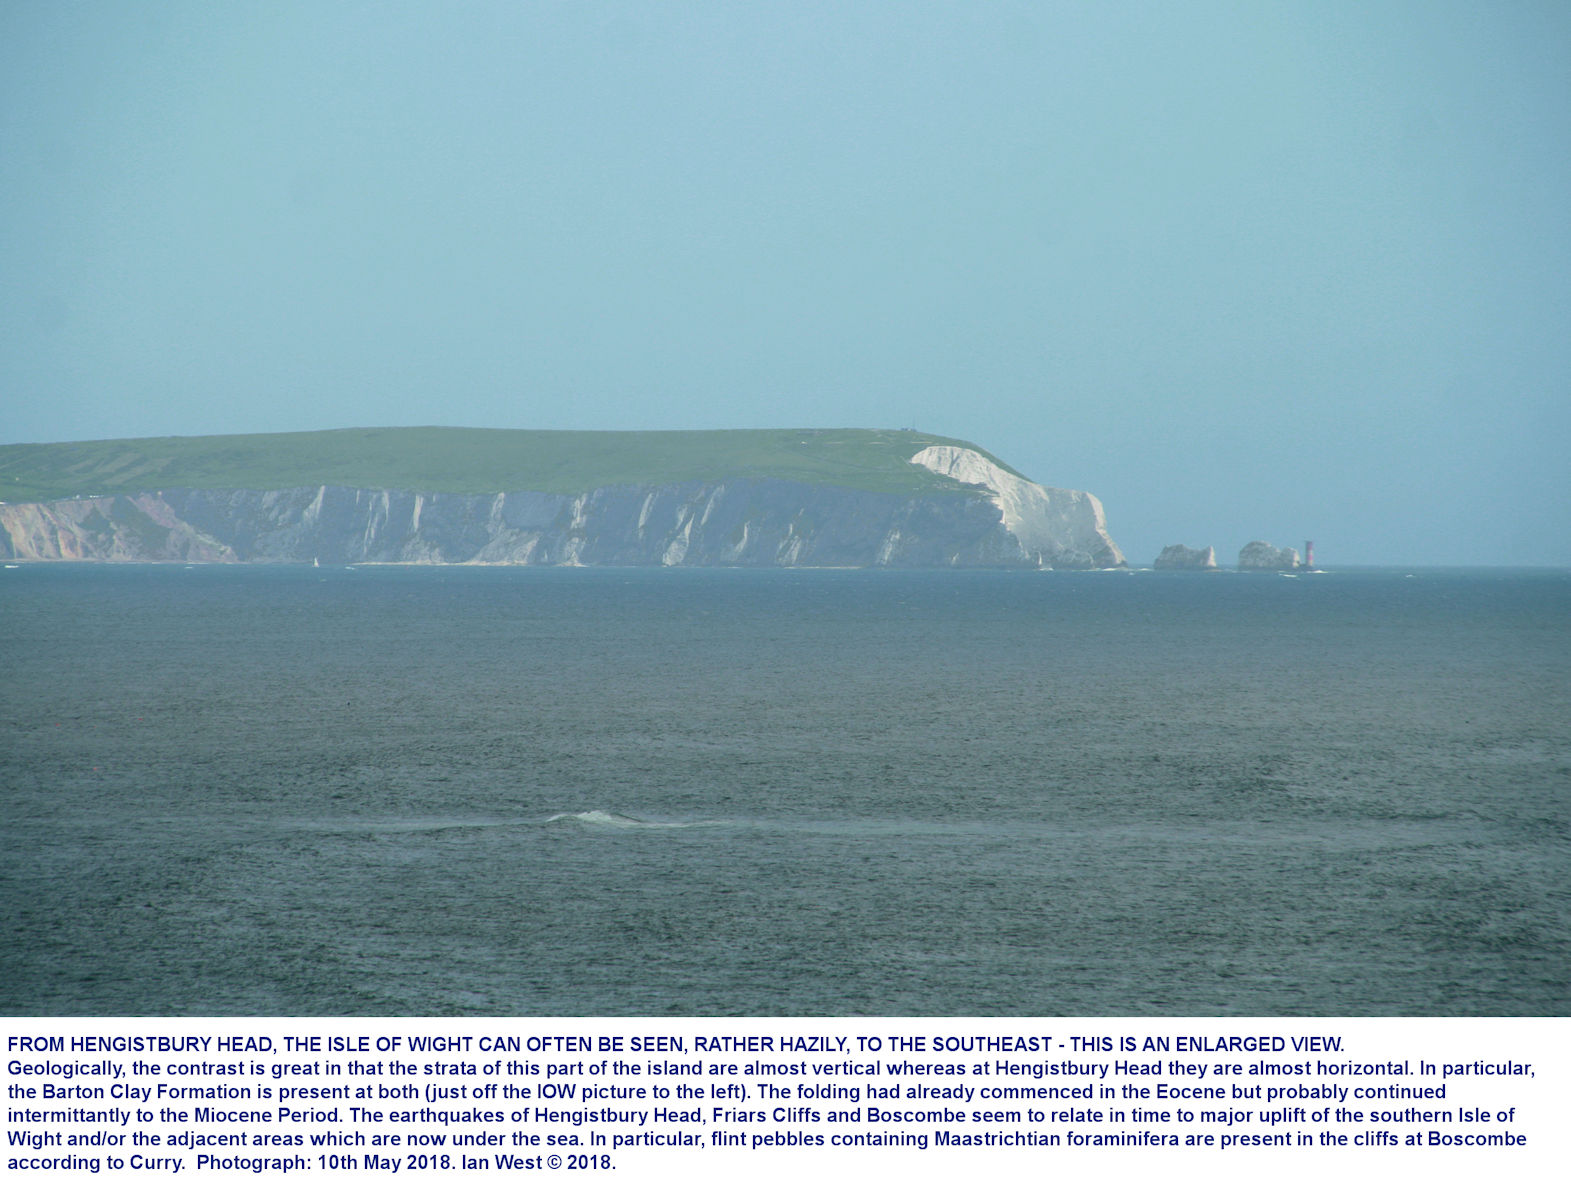 A distant, rather hazy view of the Isle of Wight from Hengistbury Head, enlarged by telephoto lens, 2018